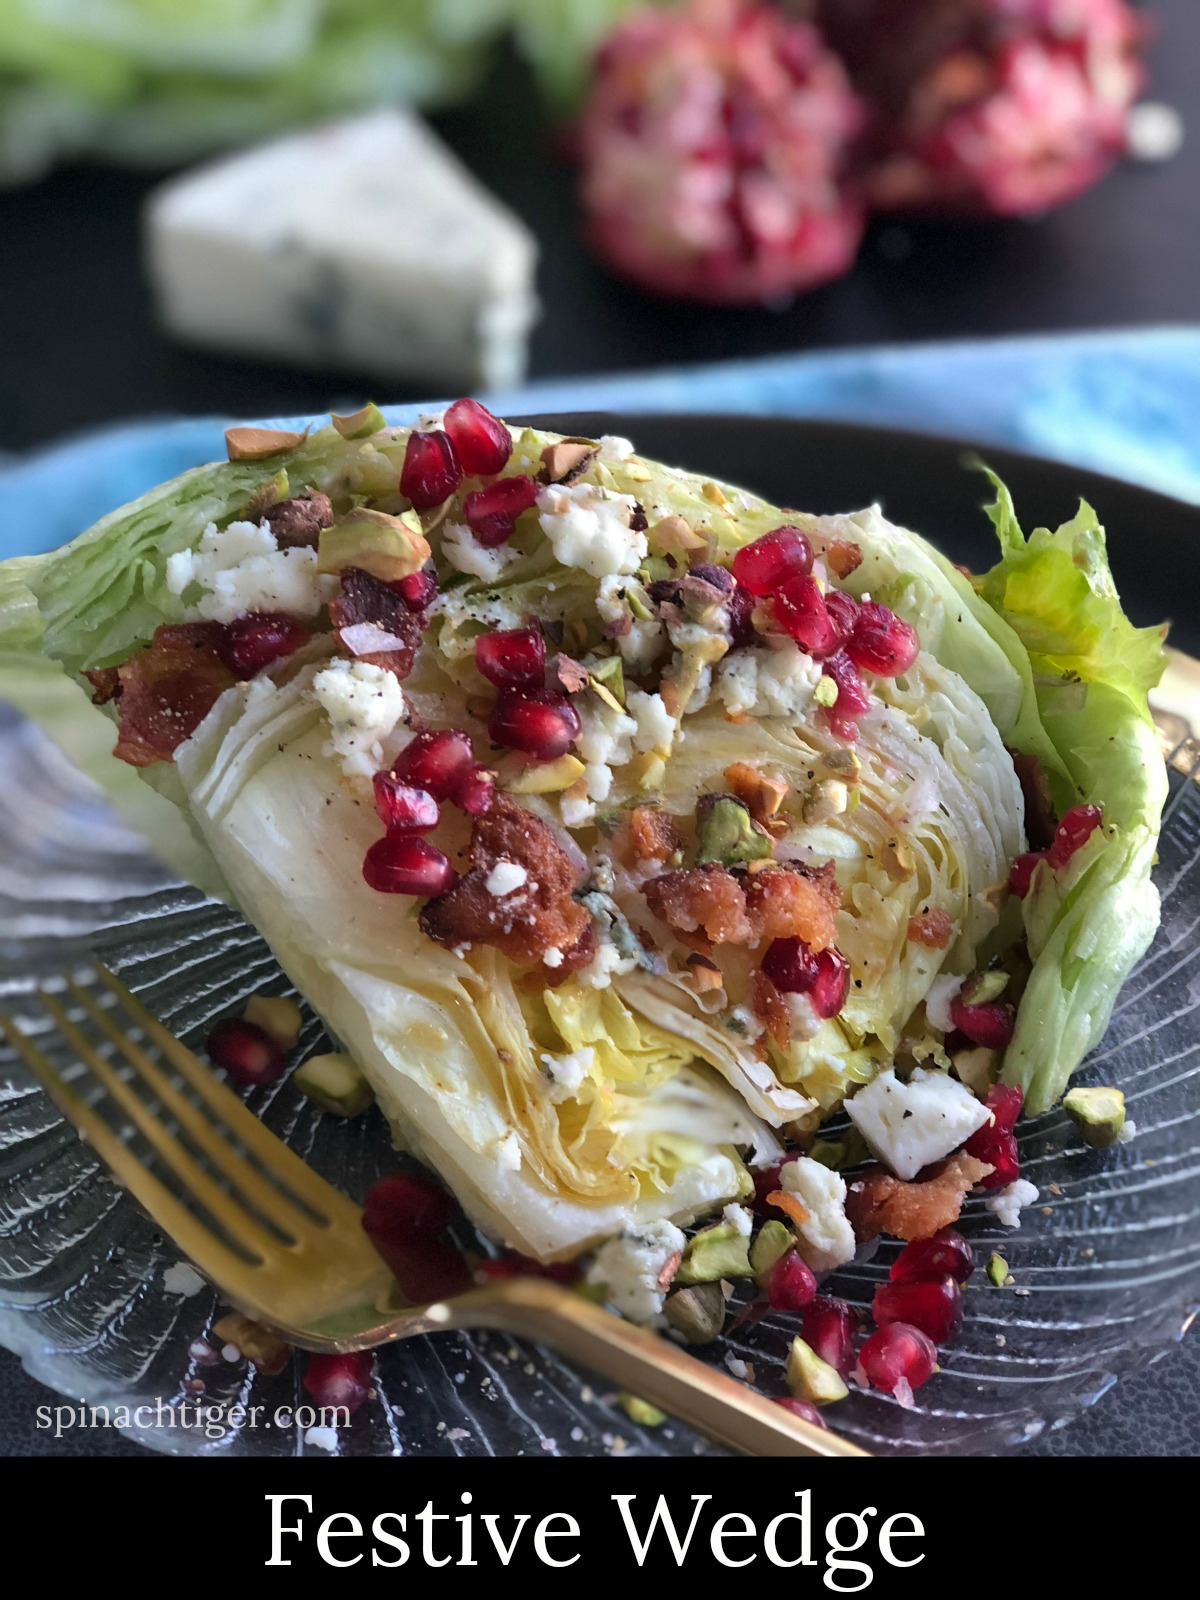 Wedge Salad with Blue Cheese Vinaigrette from Spinach Tiger